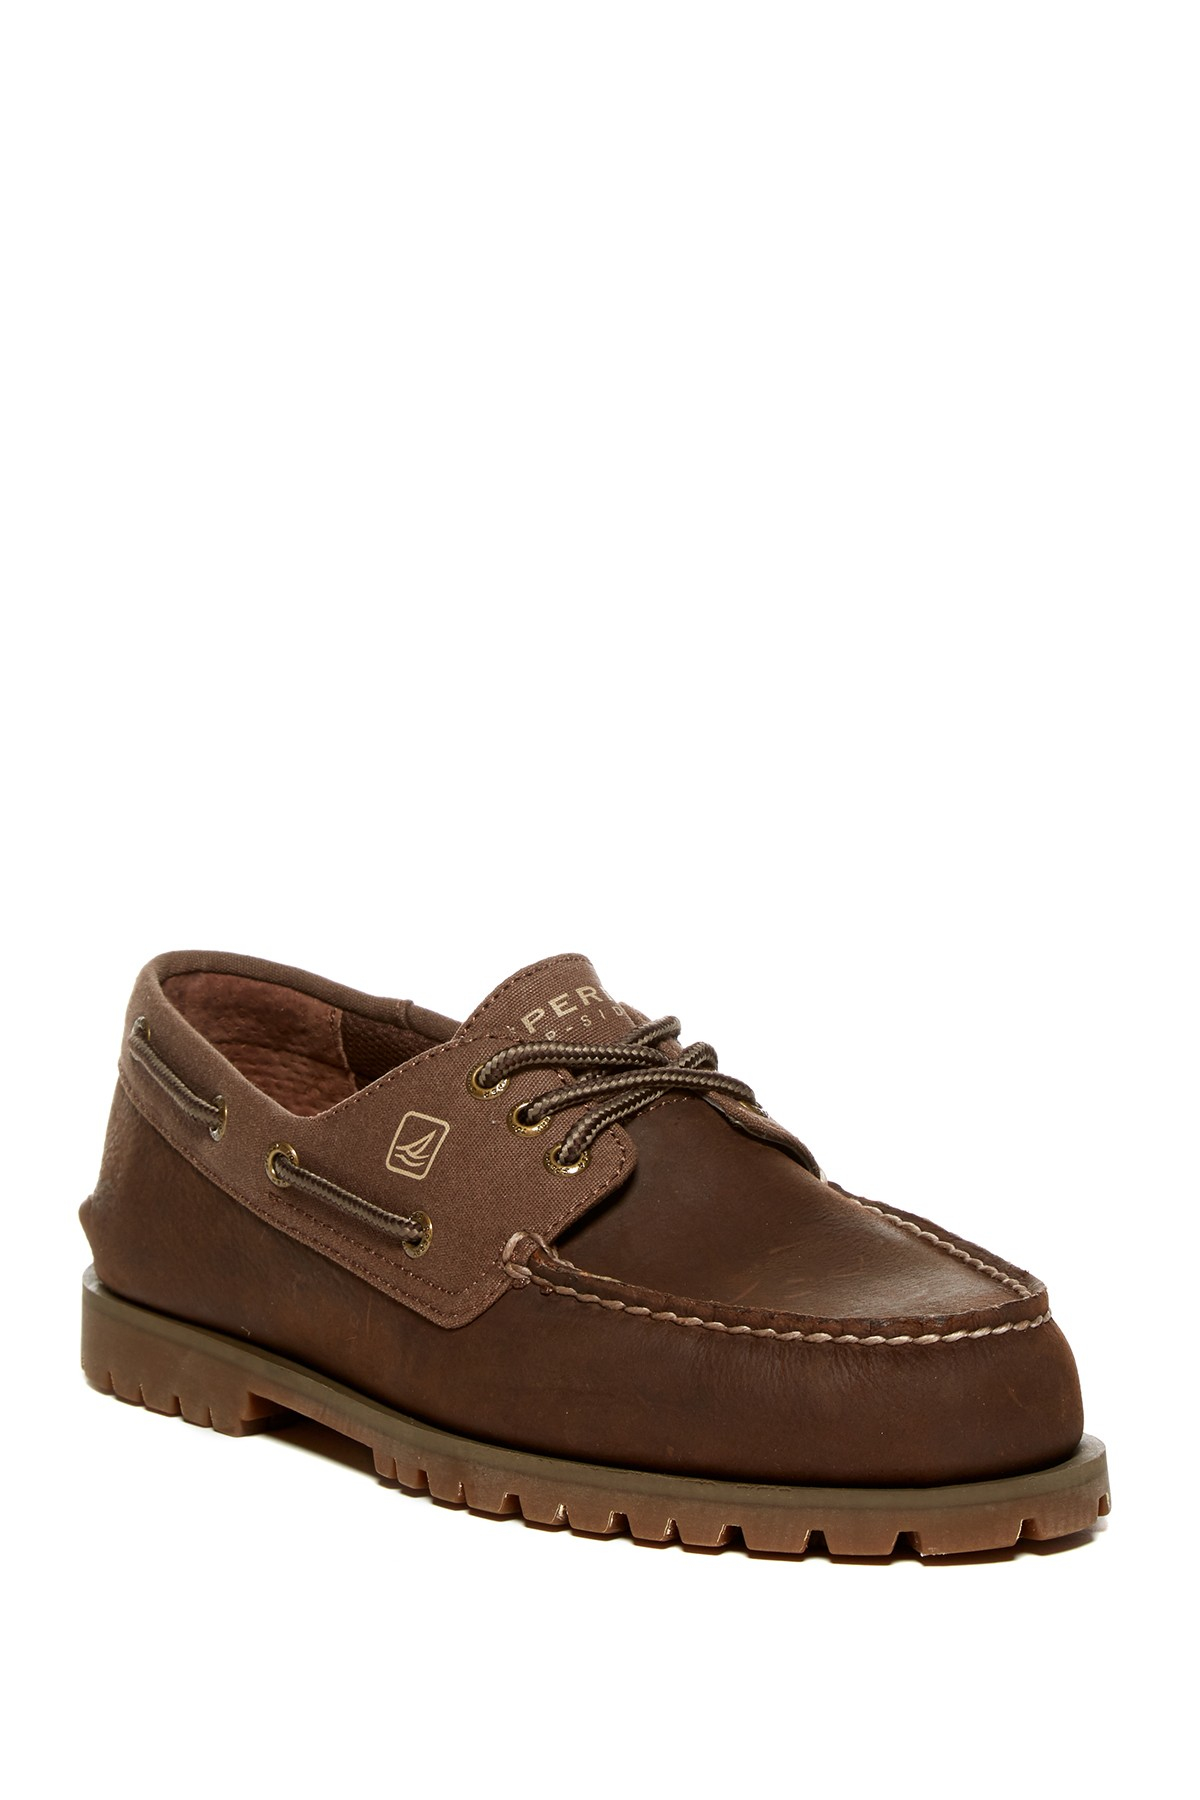 Carson S Sperry Shoes